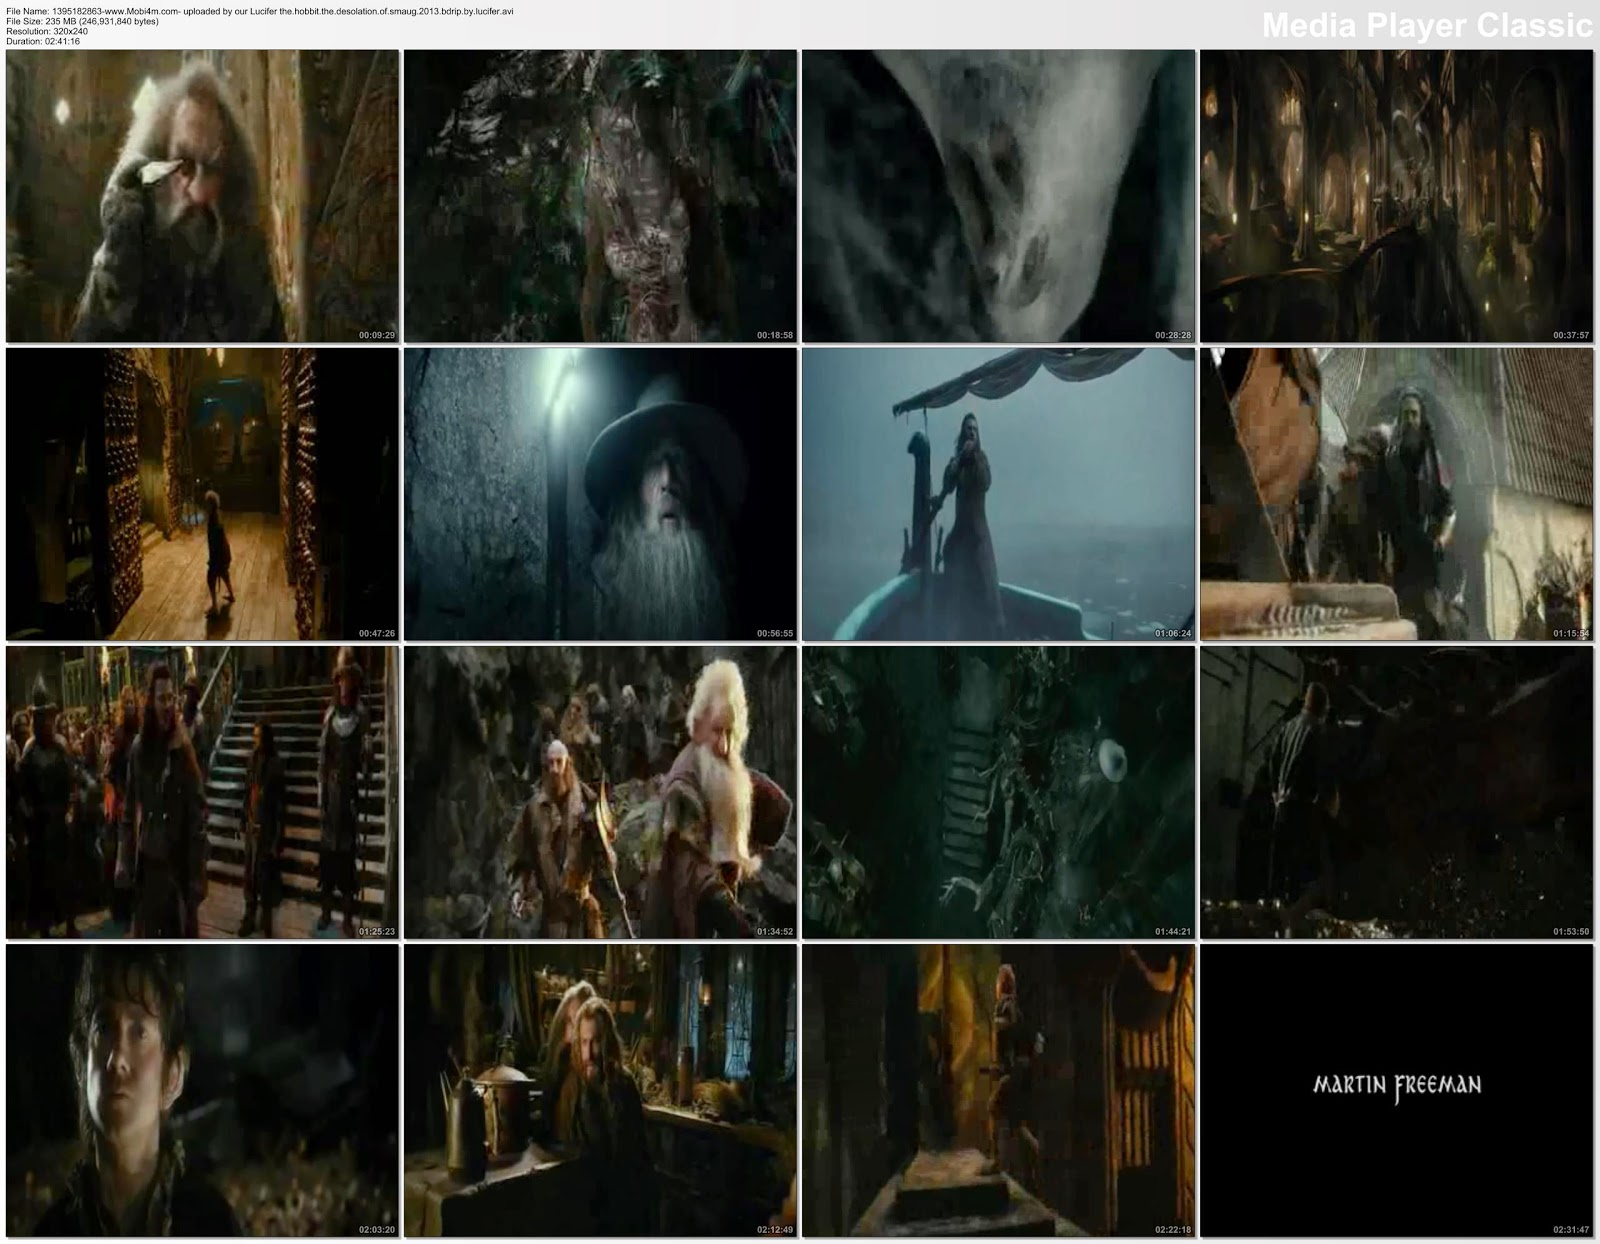 screenshoot-movies-The Hobbit The Desolation of Smaug Bluray 720p-english-subtitle-indonesia-mp4-mkv.jpg